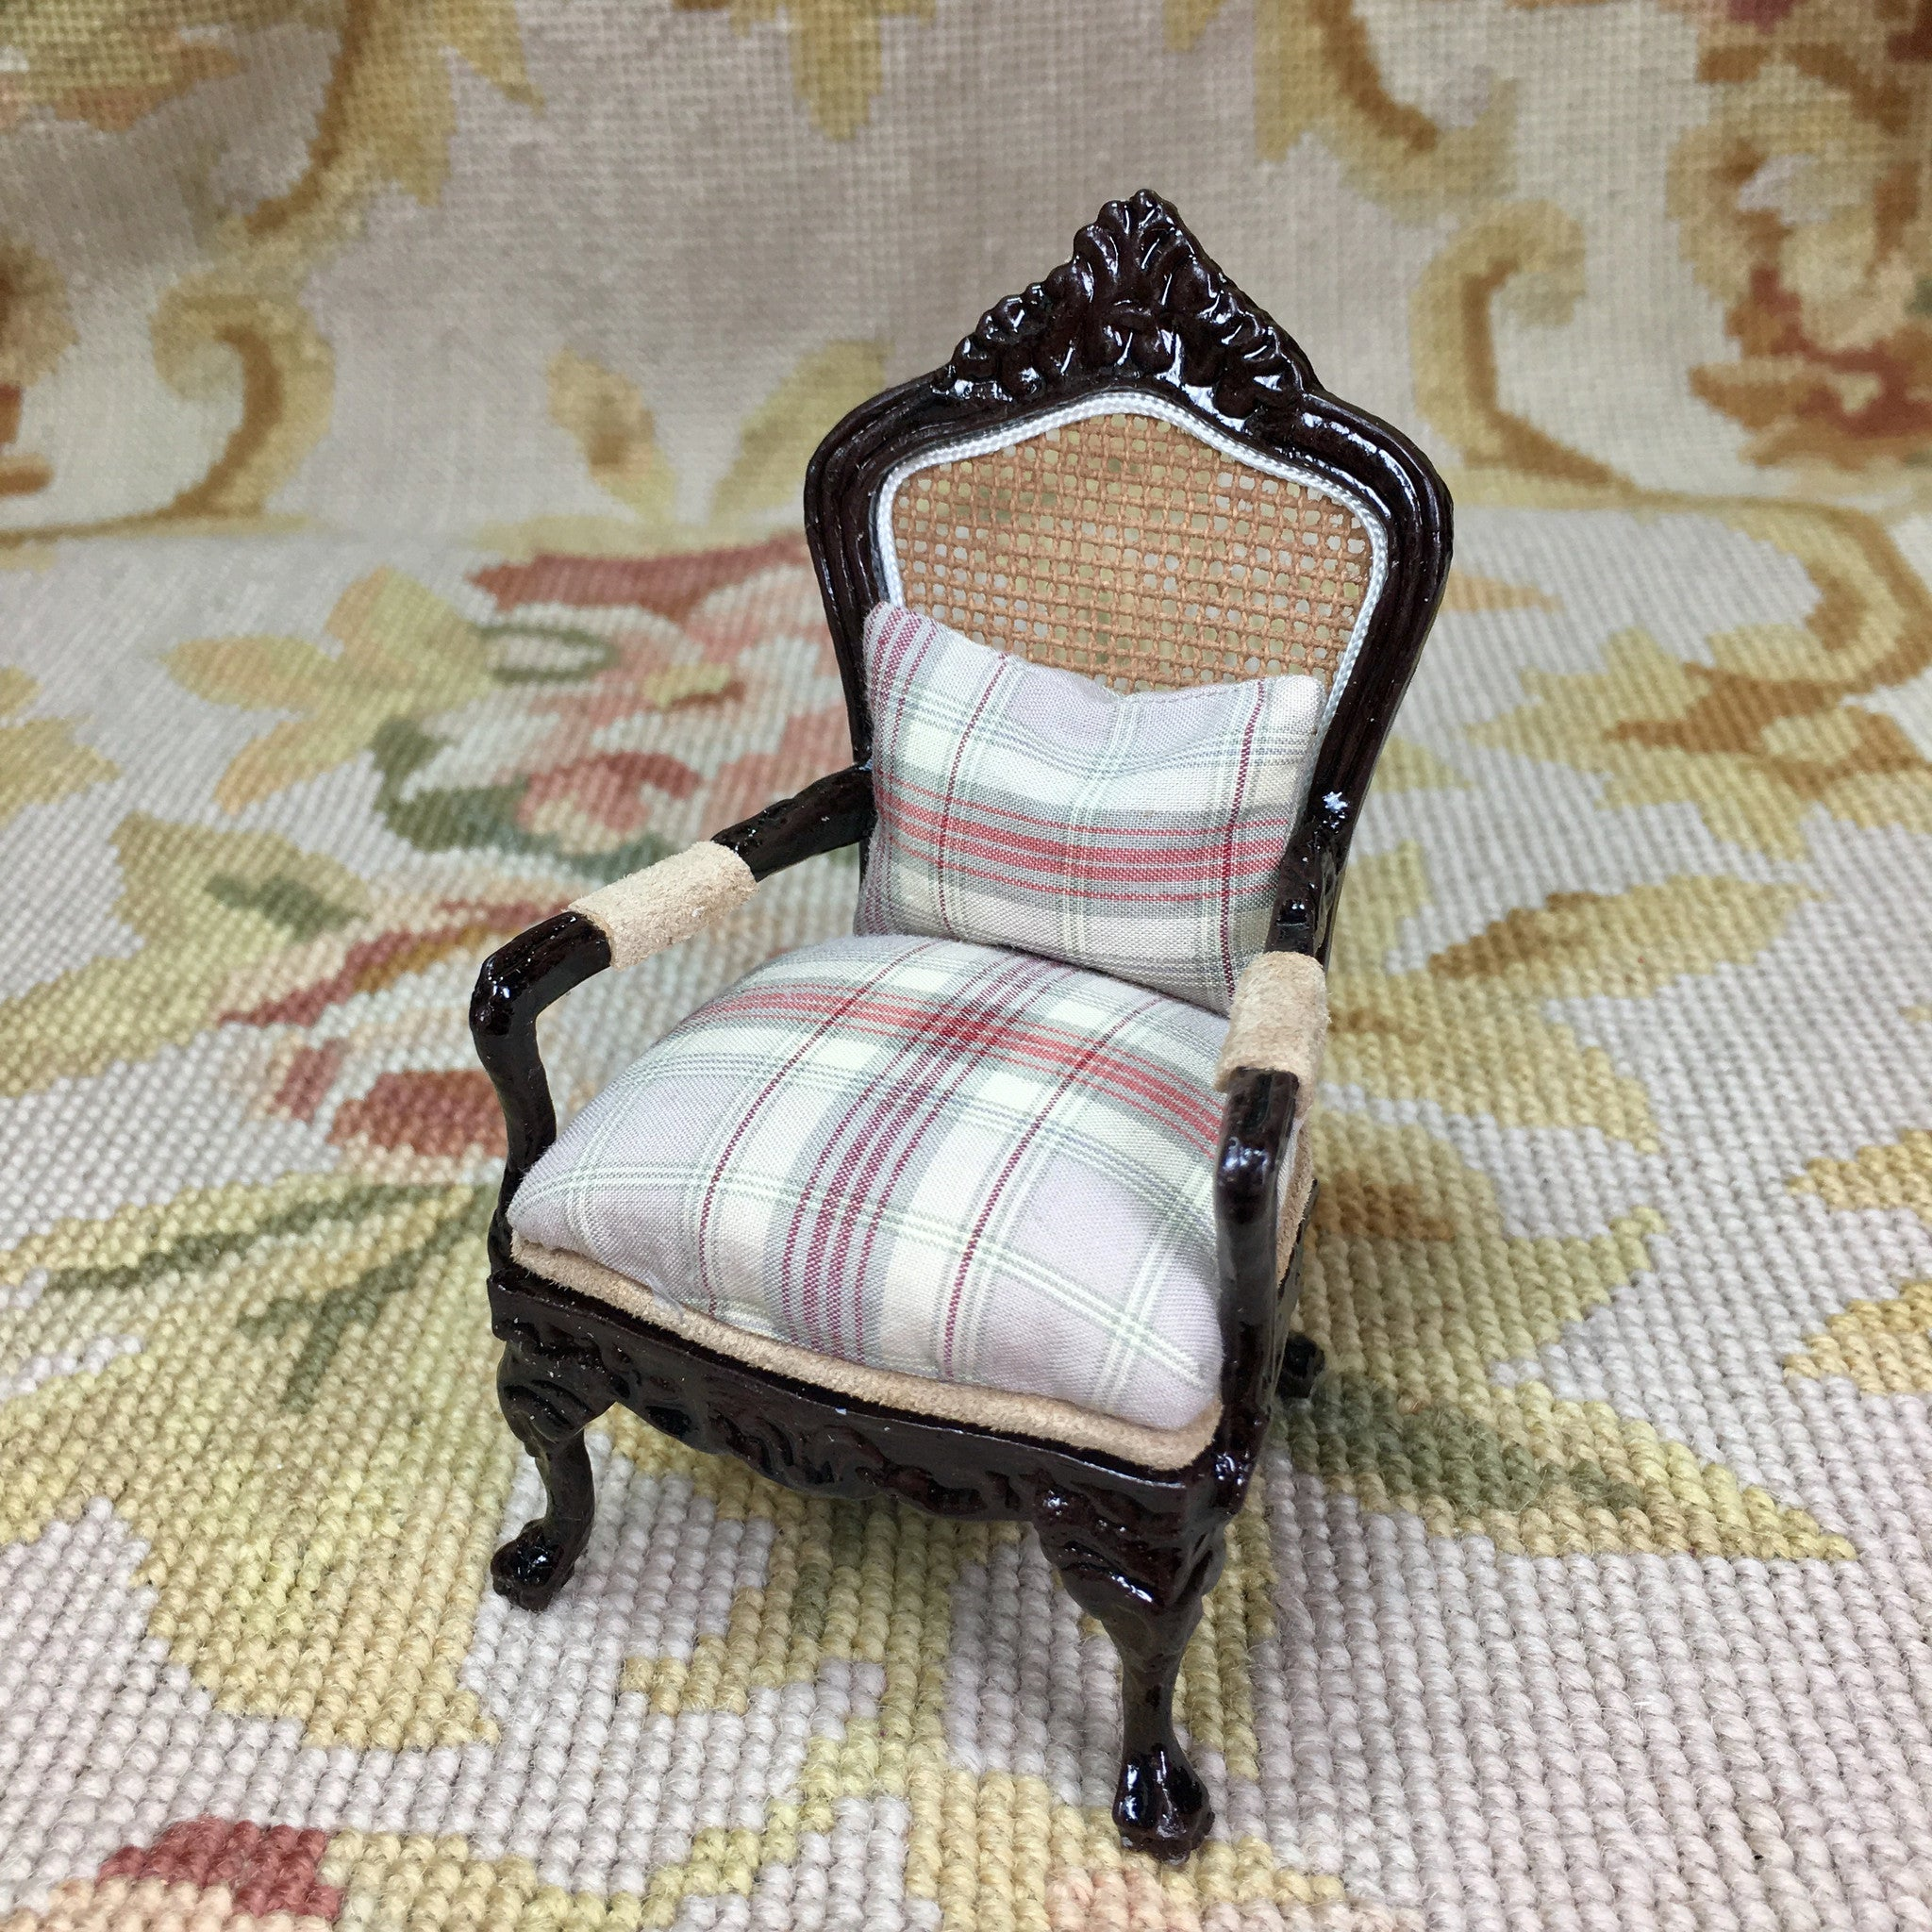 Chair Seat with Pillow 1:12 Dollhouse Miniature